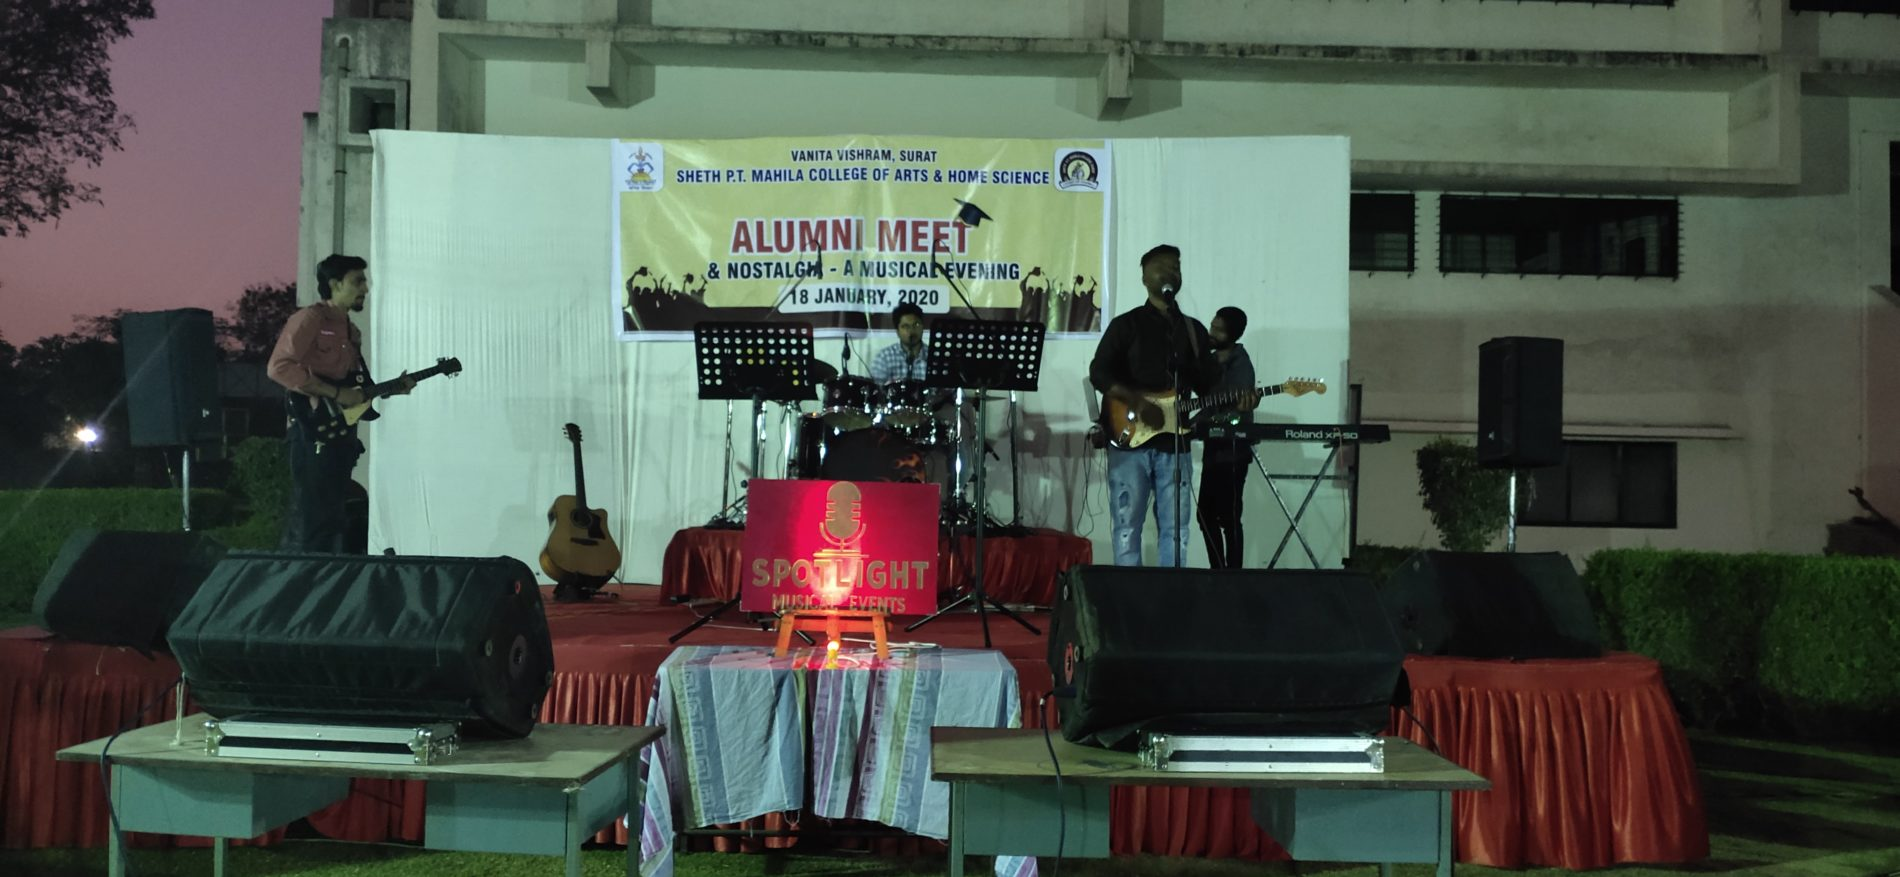 Alumni Meet 2019-2020 NOSTALGIA- A MUSICAL EVENING